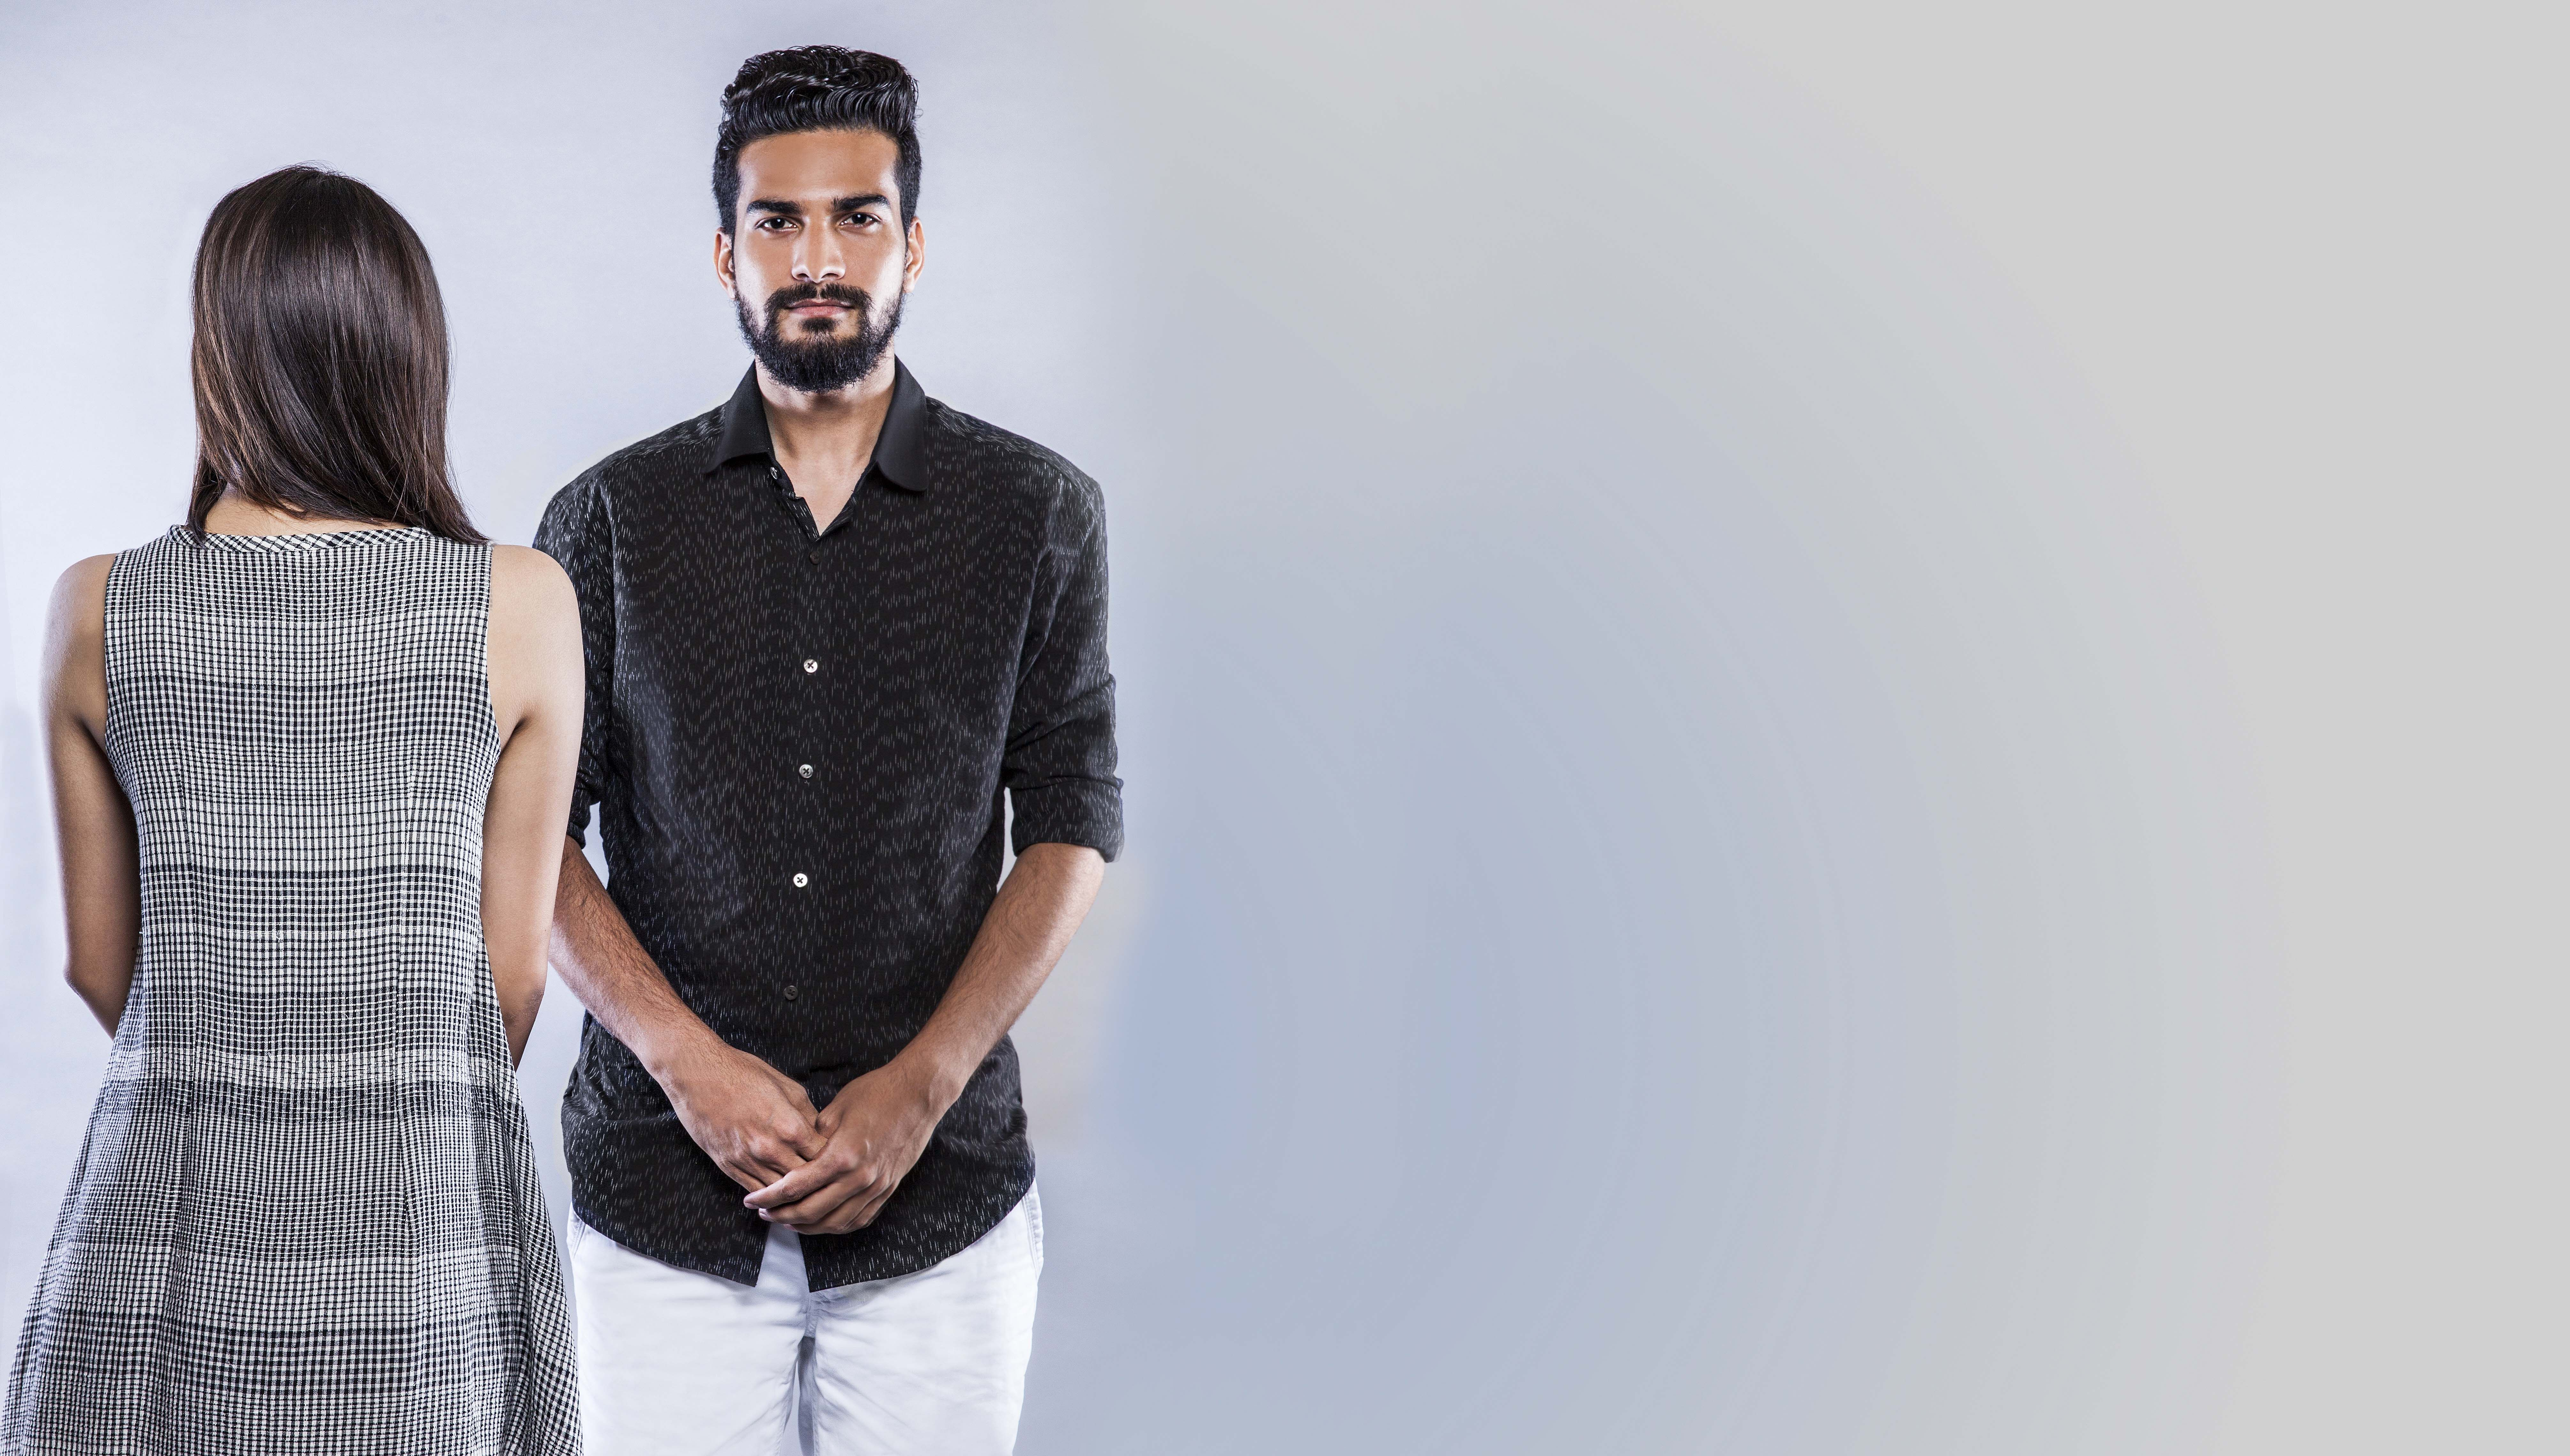 f5f55395e Dress to stand out, Go the Ikat way- A lookbook for men A little bit of  style, sorry, make that a lot of style, and yet achieving a poise...read  more at ...